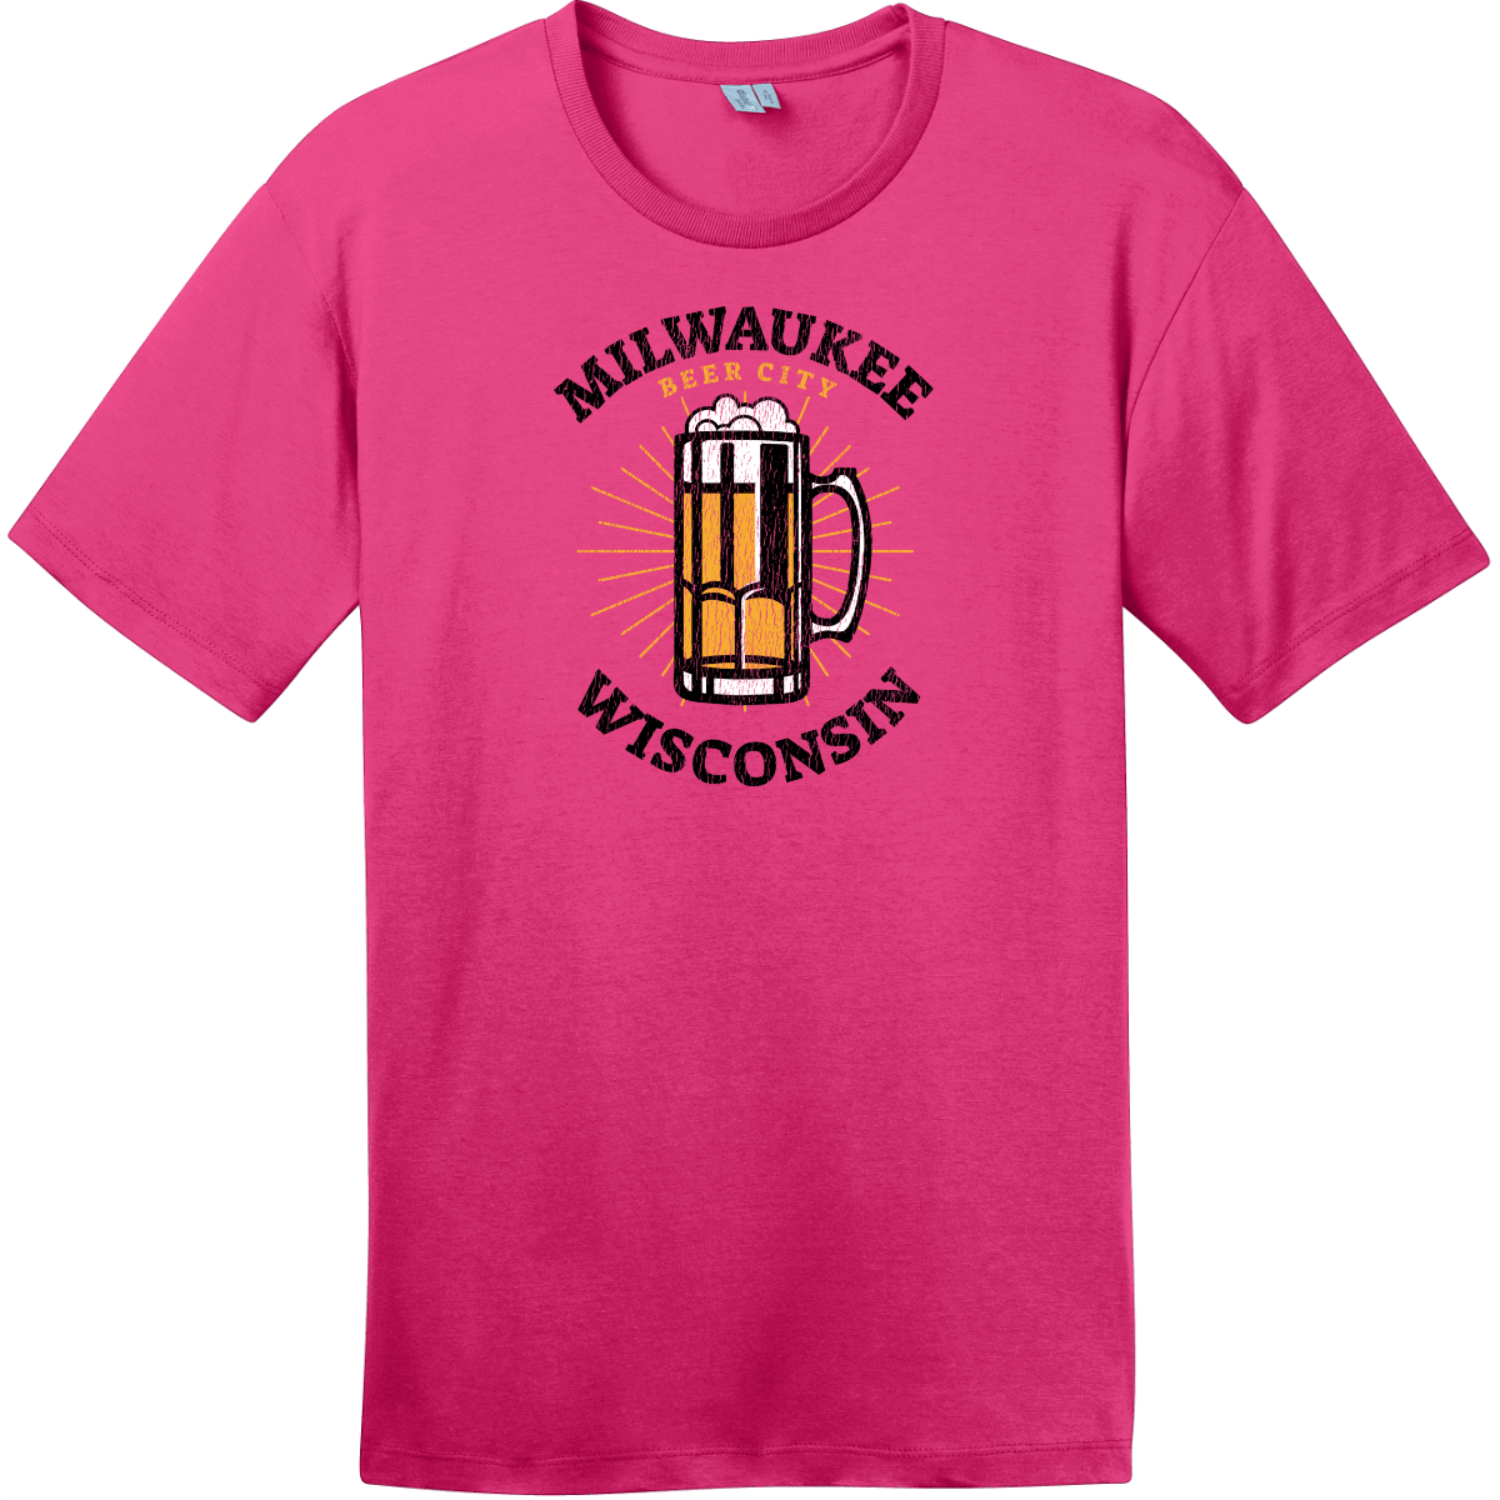 Milwaukee Wisconsin Beer City T-Shirt Dark Fuchsia District Perfect Weight Tee DT104